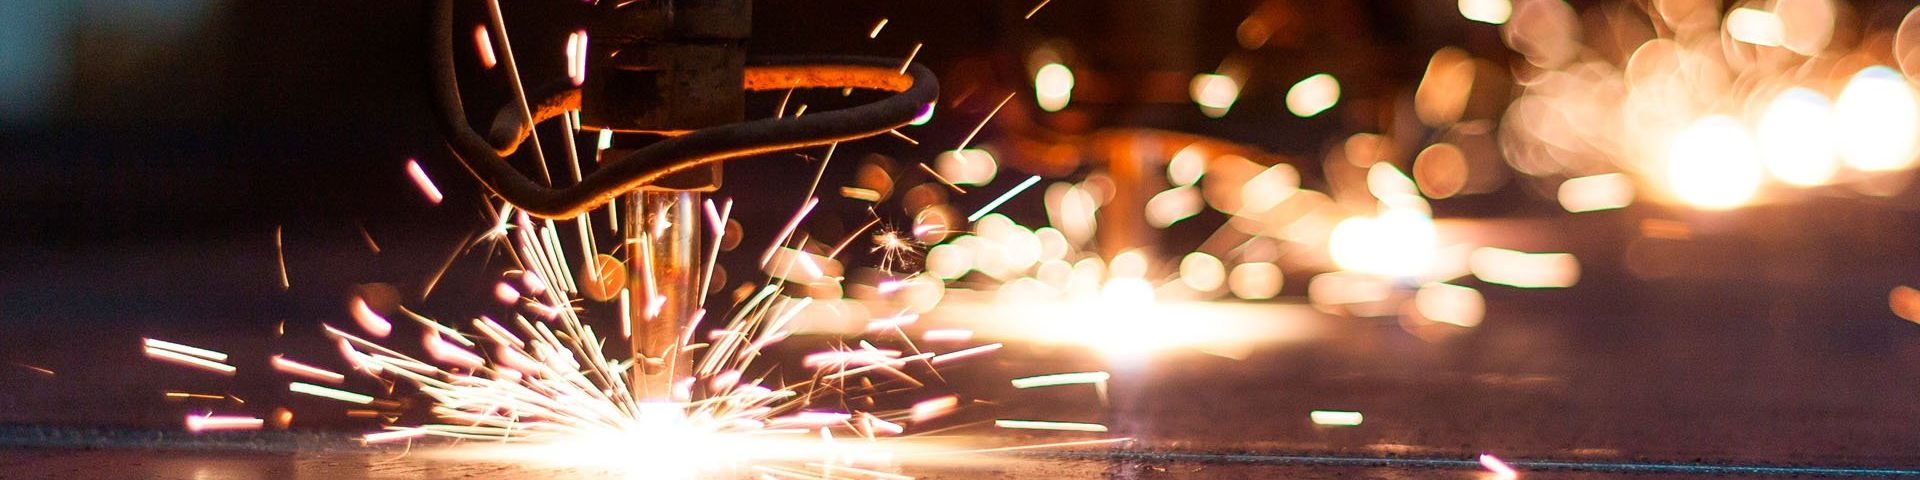 Sparks flying, as an industrial drill hits metal.